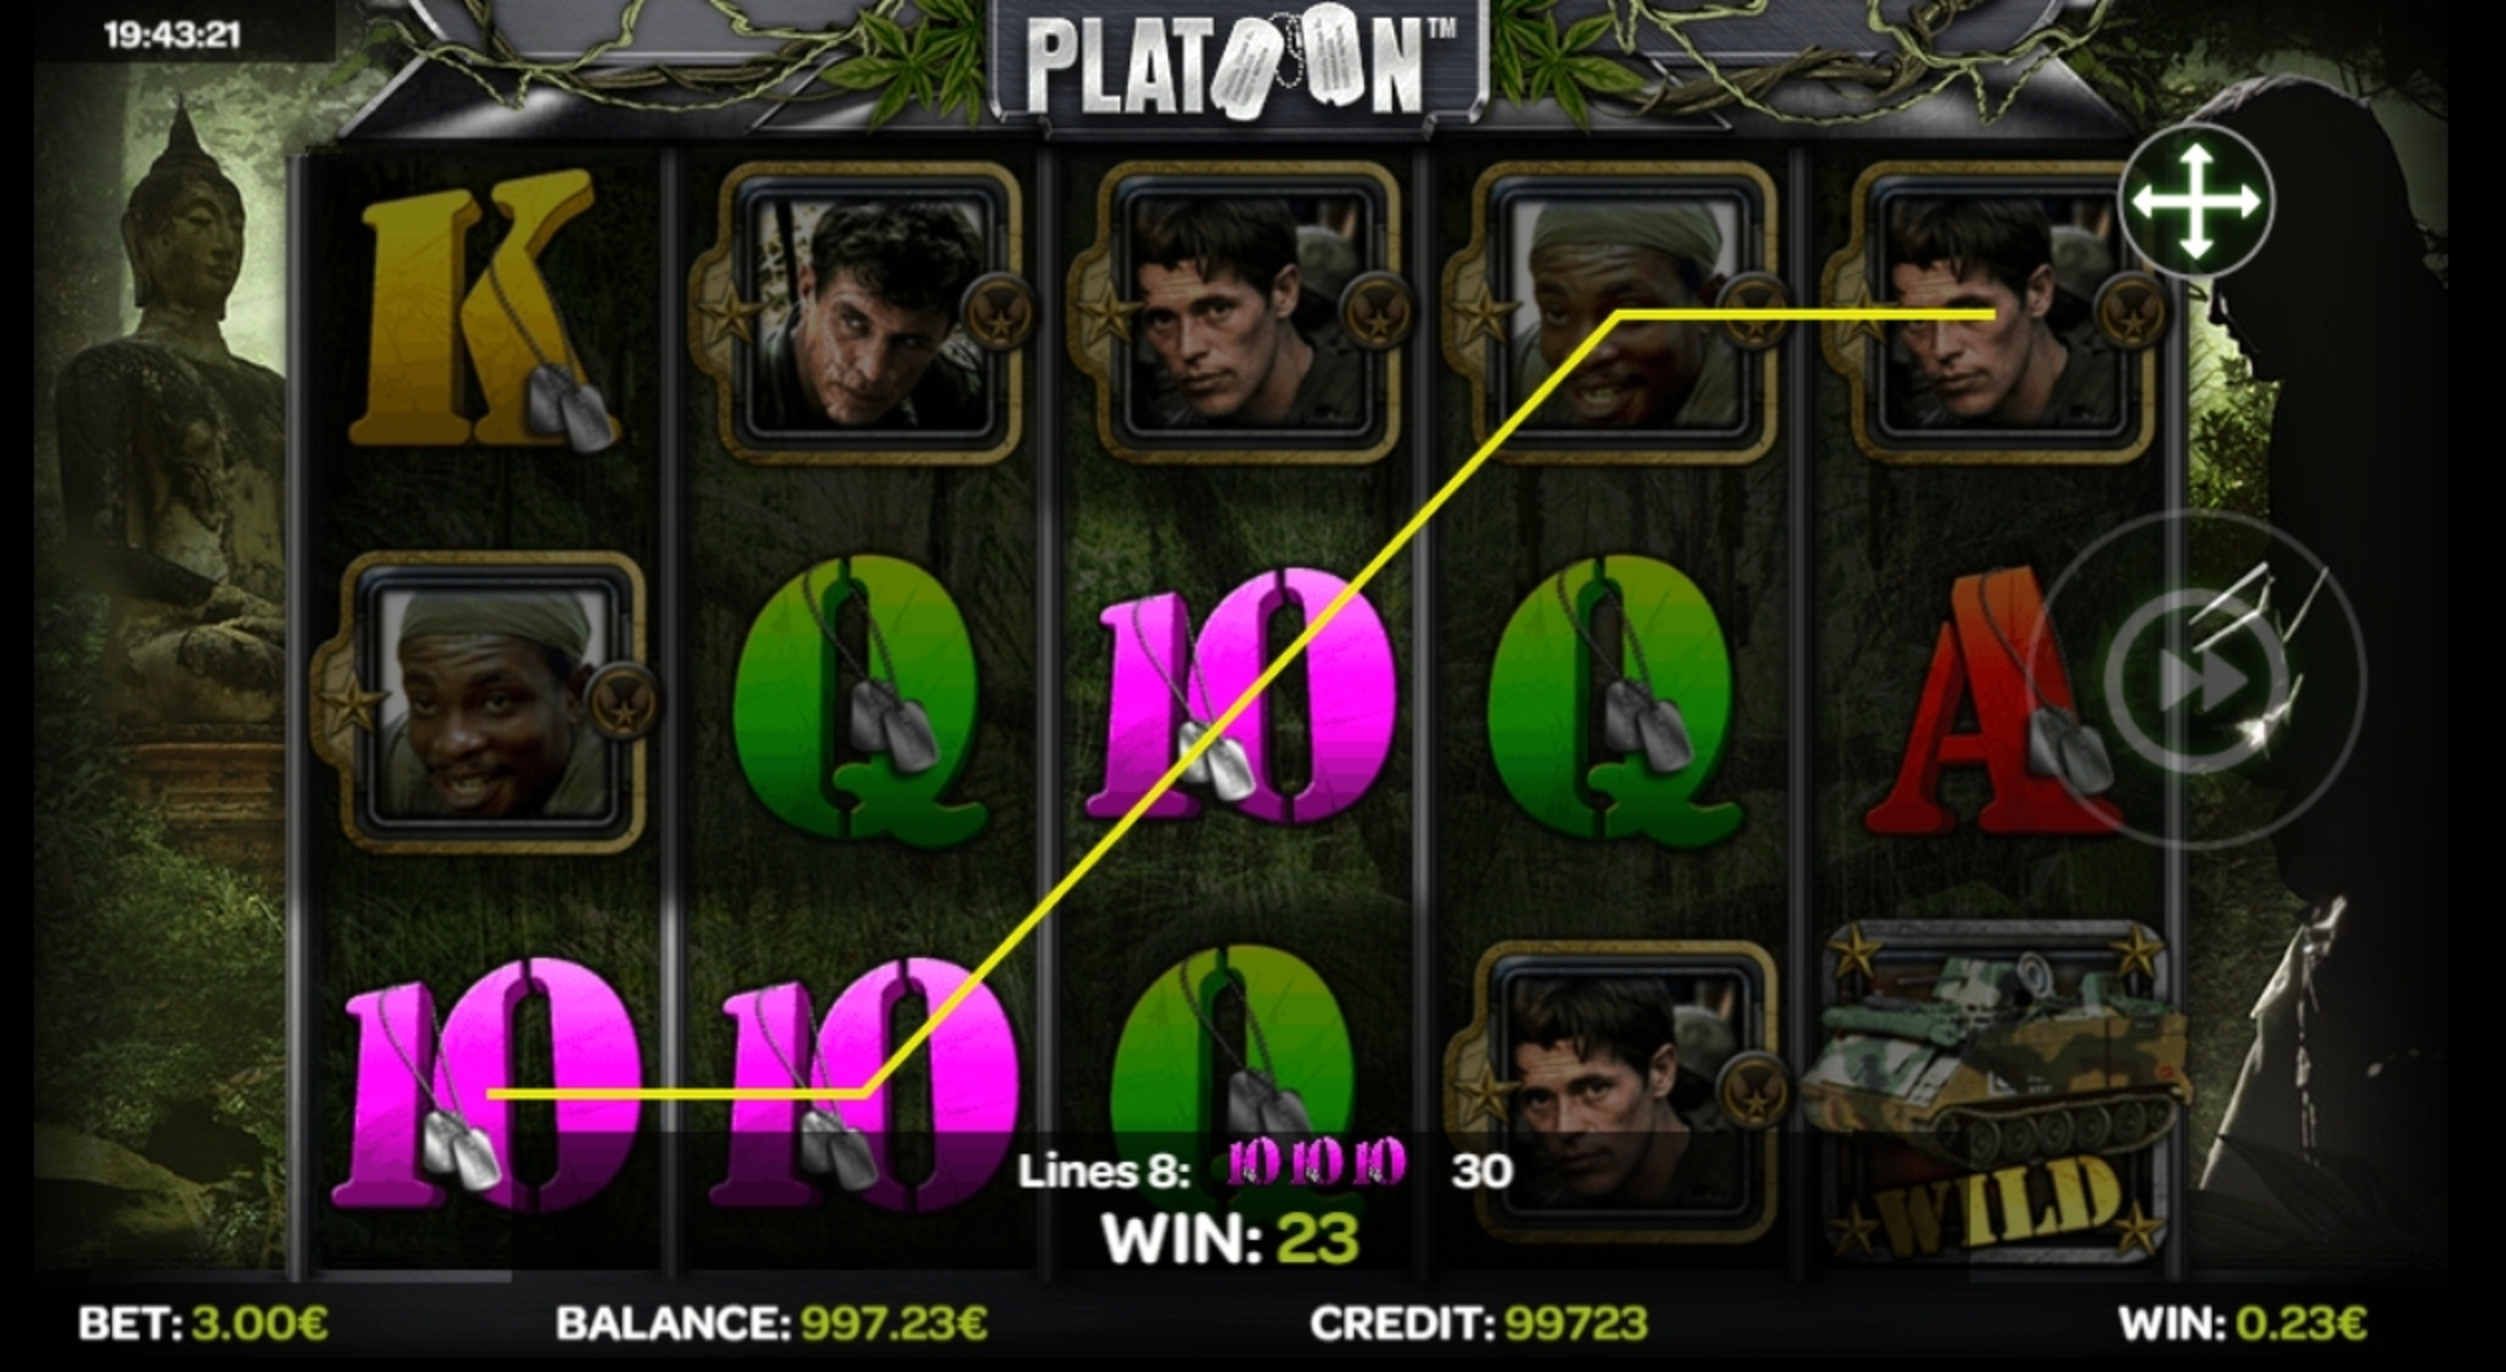 Win Money in Platoon Free Slot Game by iSoftBet